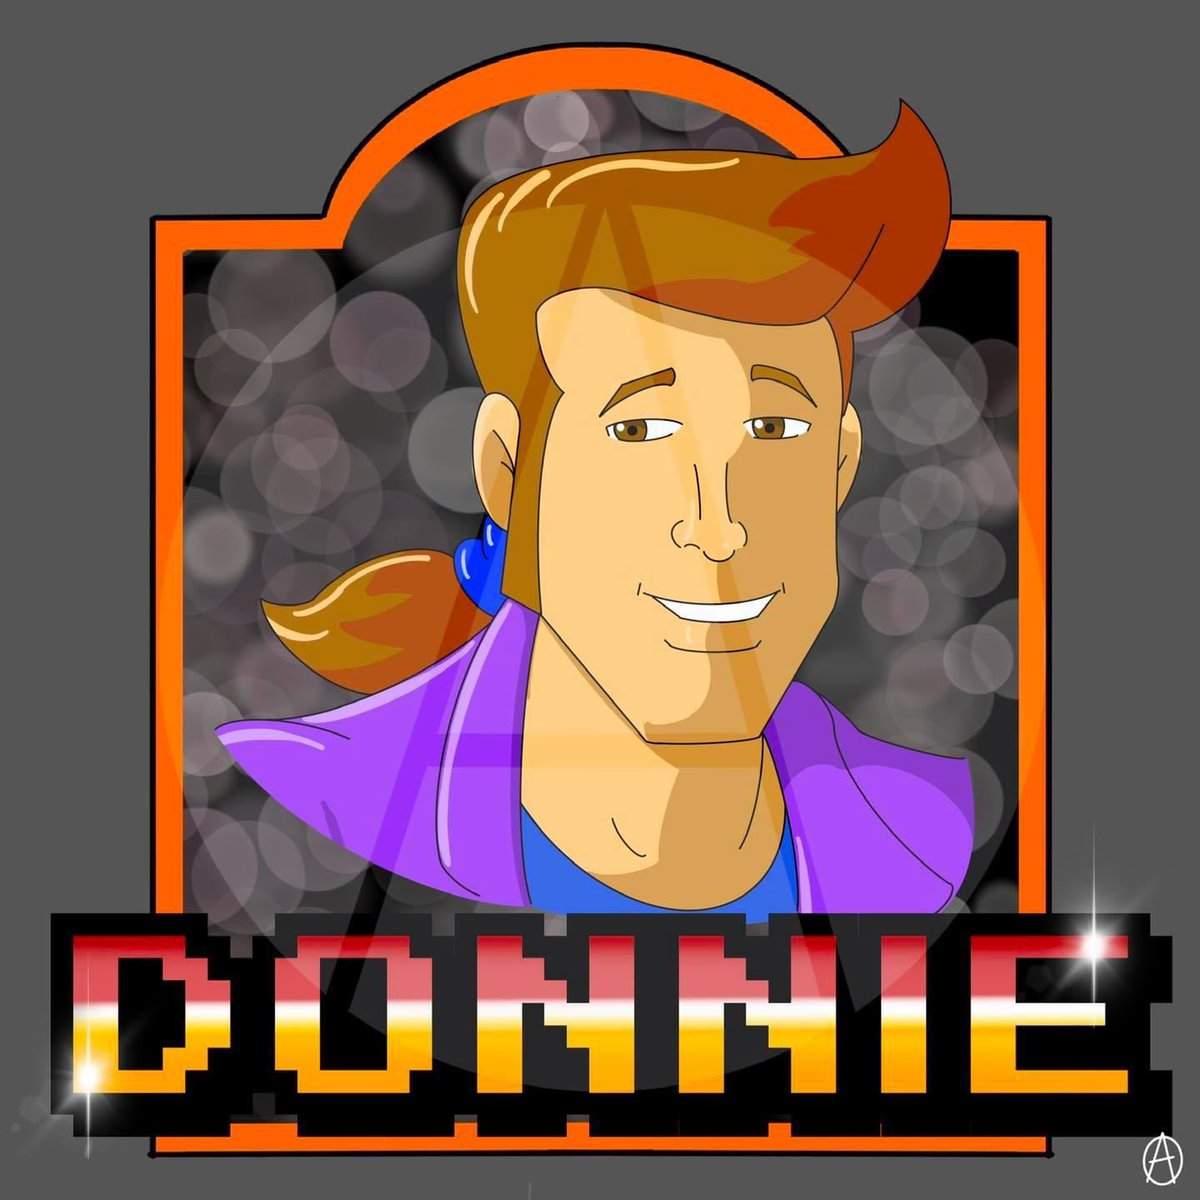 My awesome hubby drew me my own Donnie cartoon picture!  I LOVE IT!!!@DonnieWahlberg #TWUG #BlockHead #NKOTB #loveeternal #SpreadLoveAndLoveWillSpread